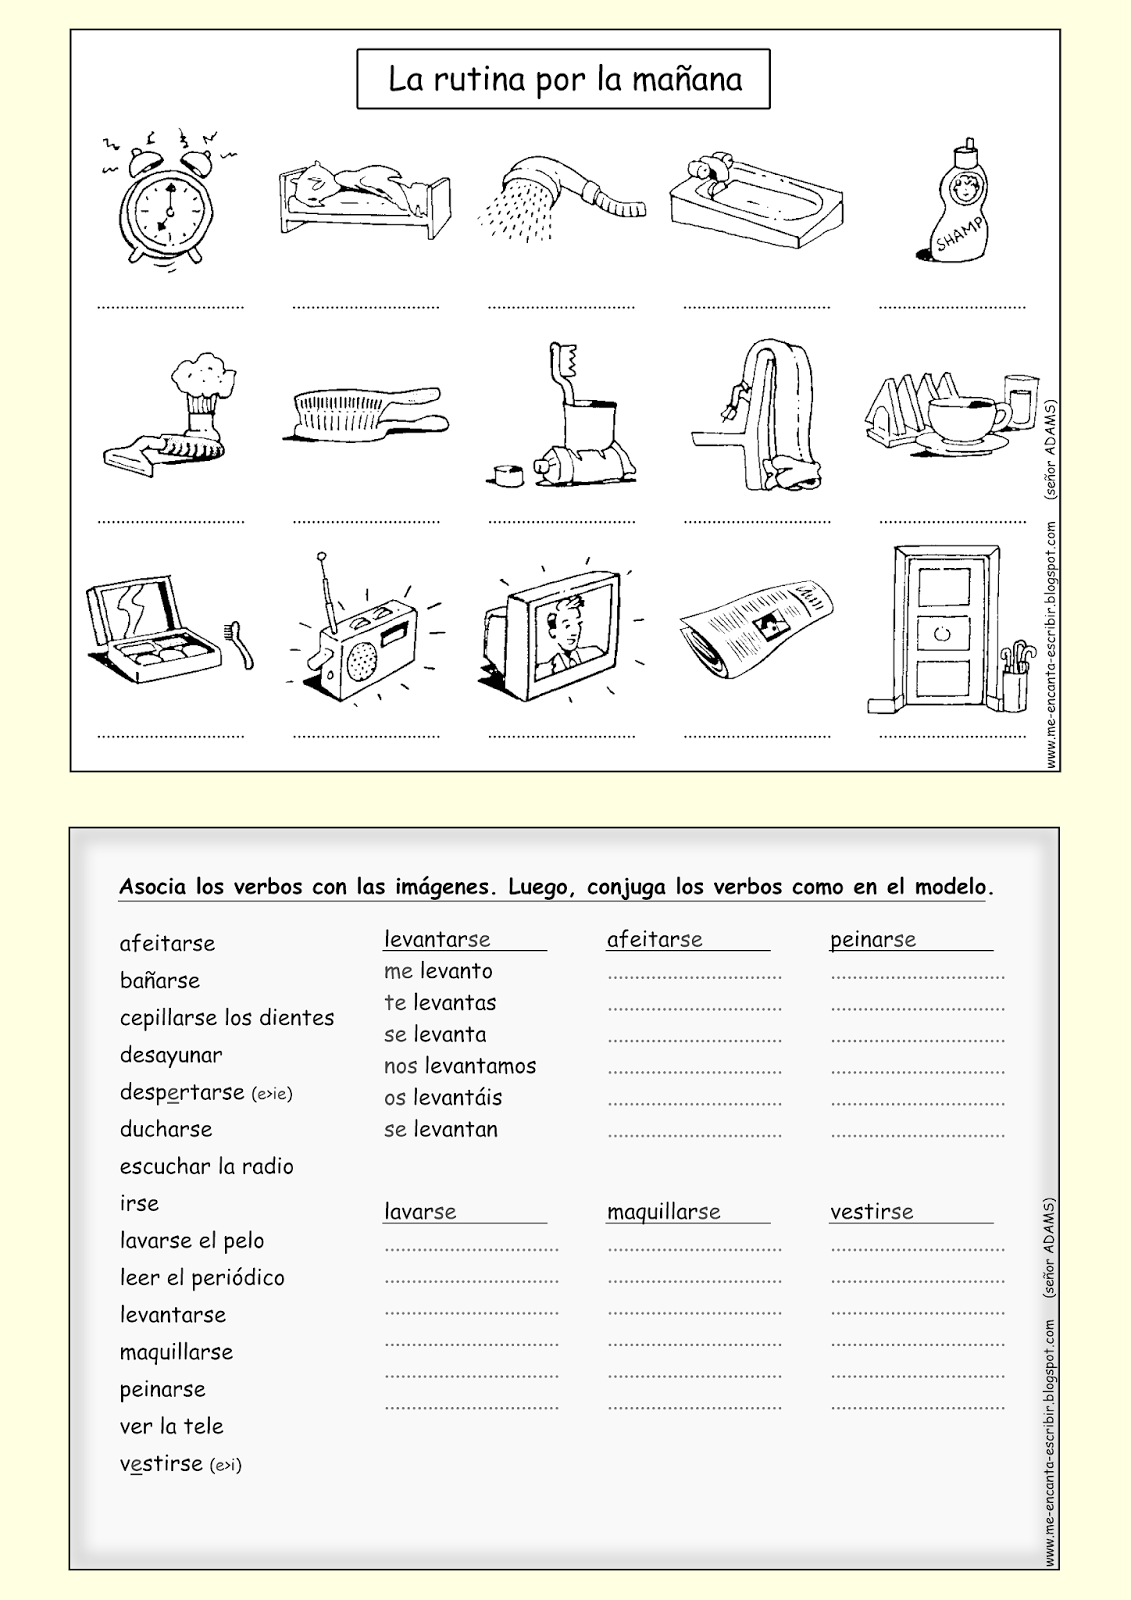 workbooks por and para practice worksheets free printable worksheets for pre school children. Black Bedroom Furniture Sets. Home Design Ideas